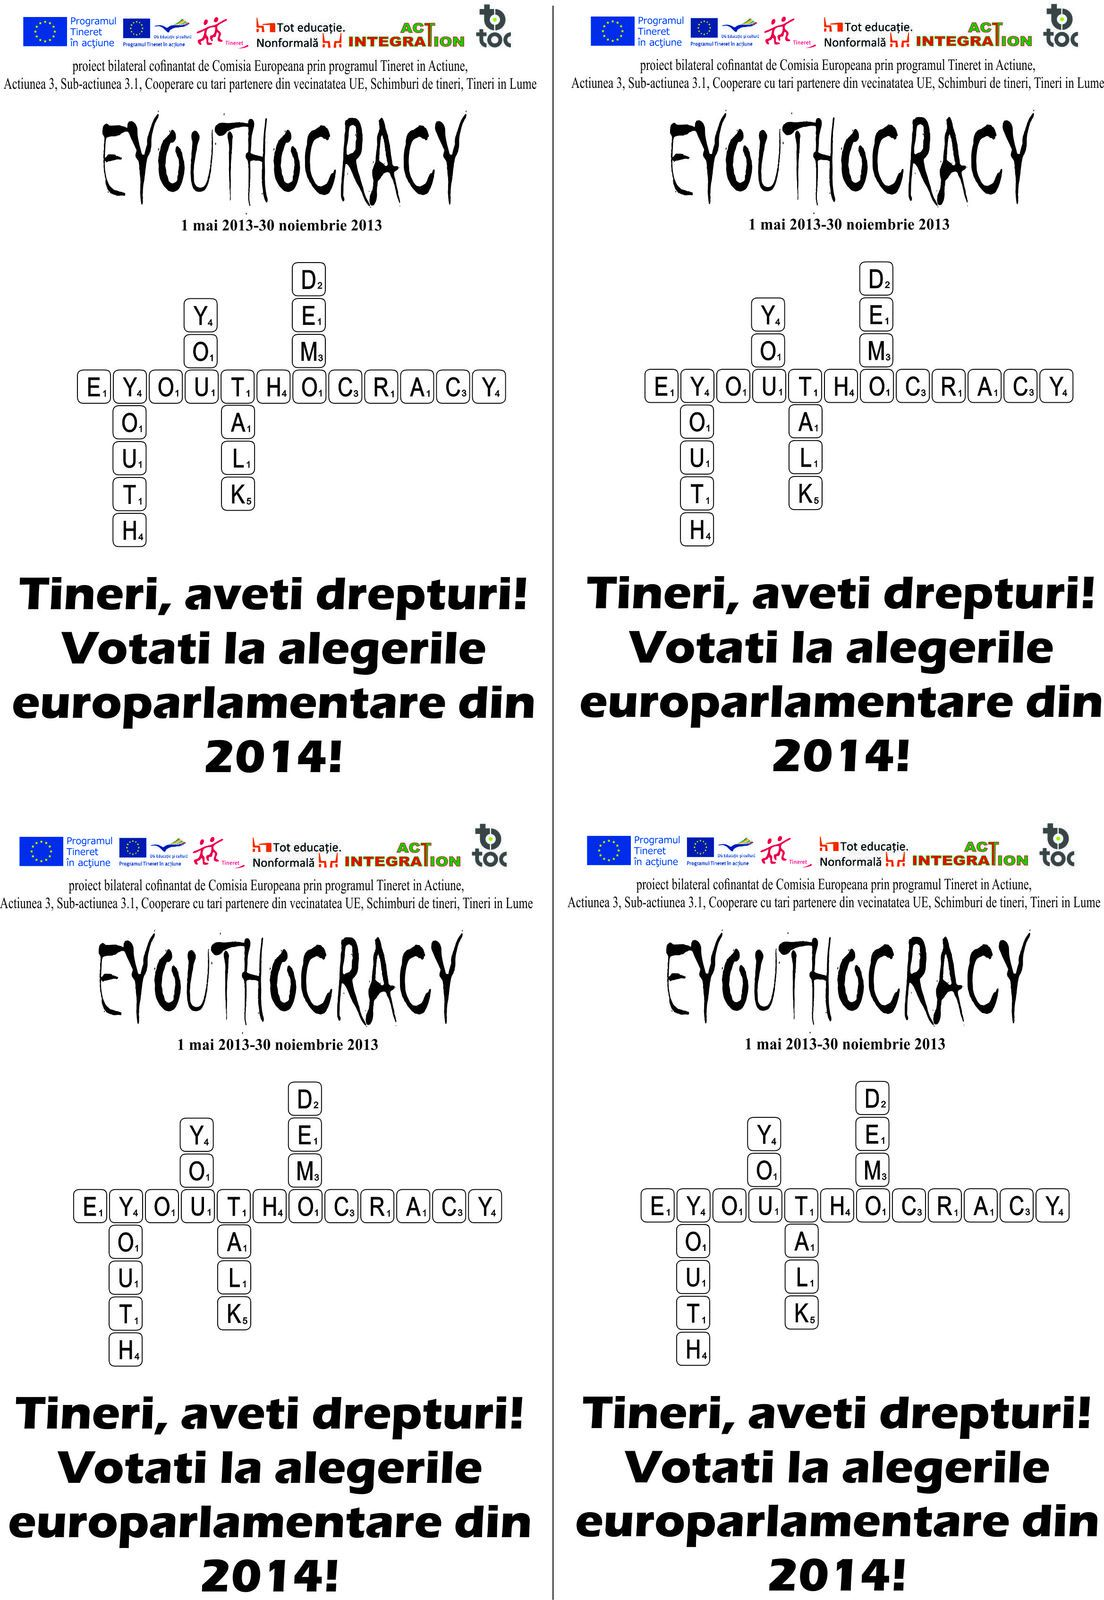 Eyouthocracy project- October-November 2013-Dissemination and exploitation of results